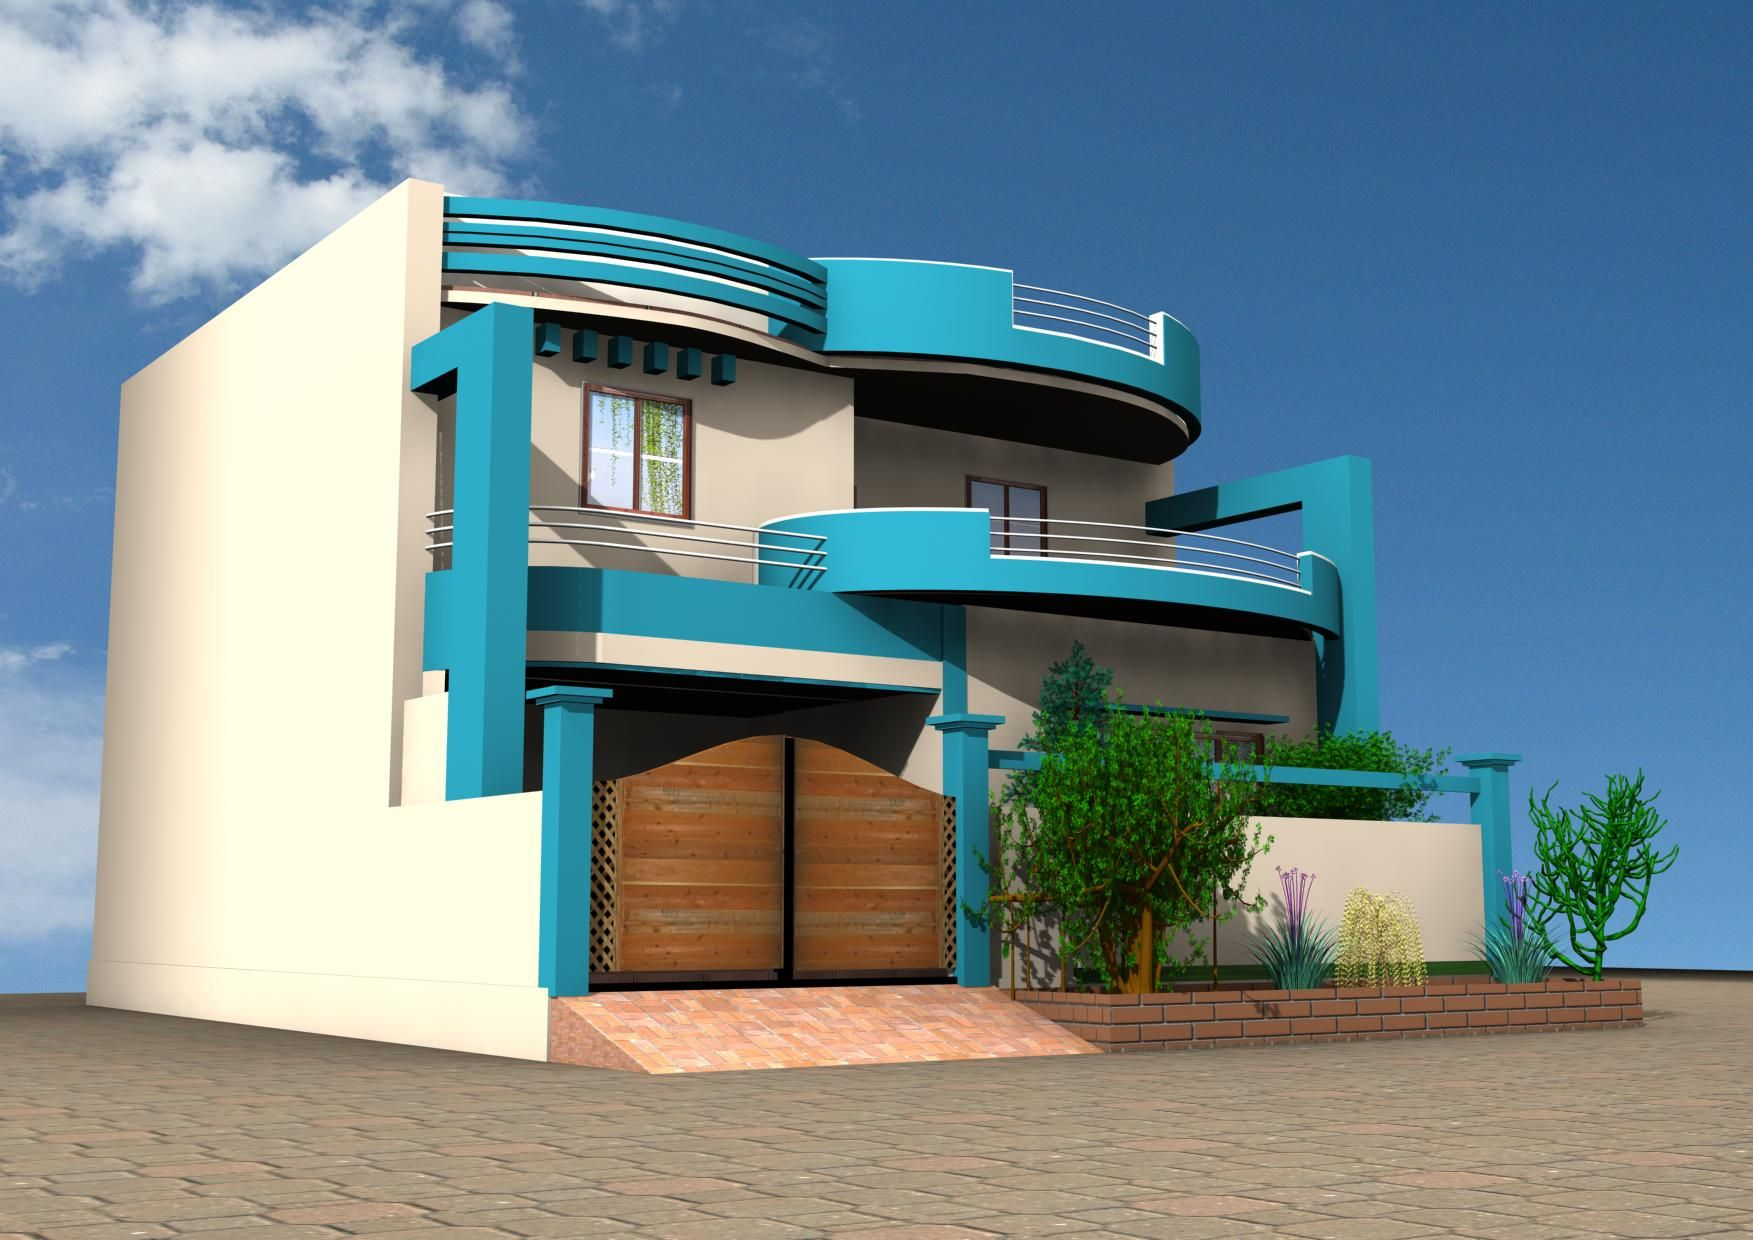 3d home design images hd 1080p for House designs 3d model